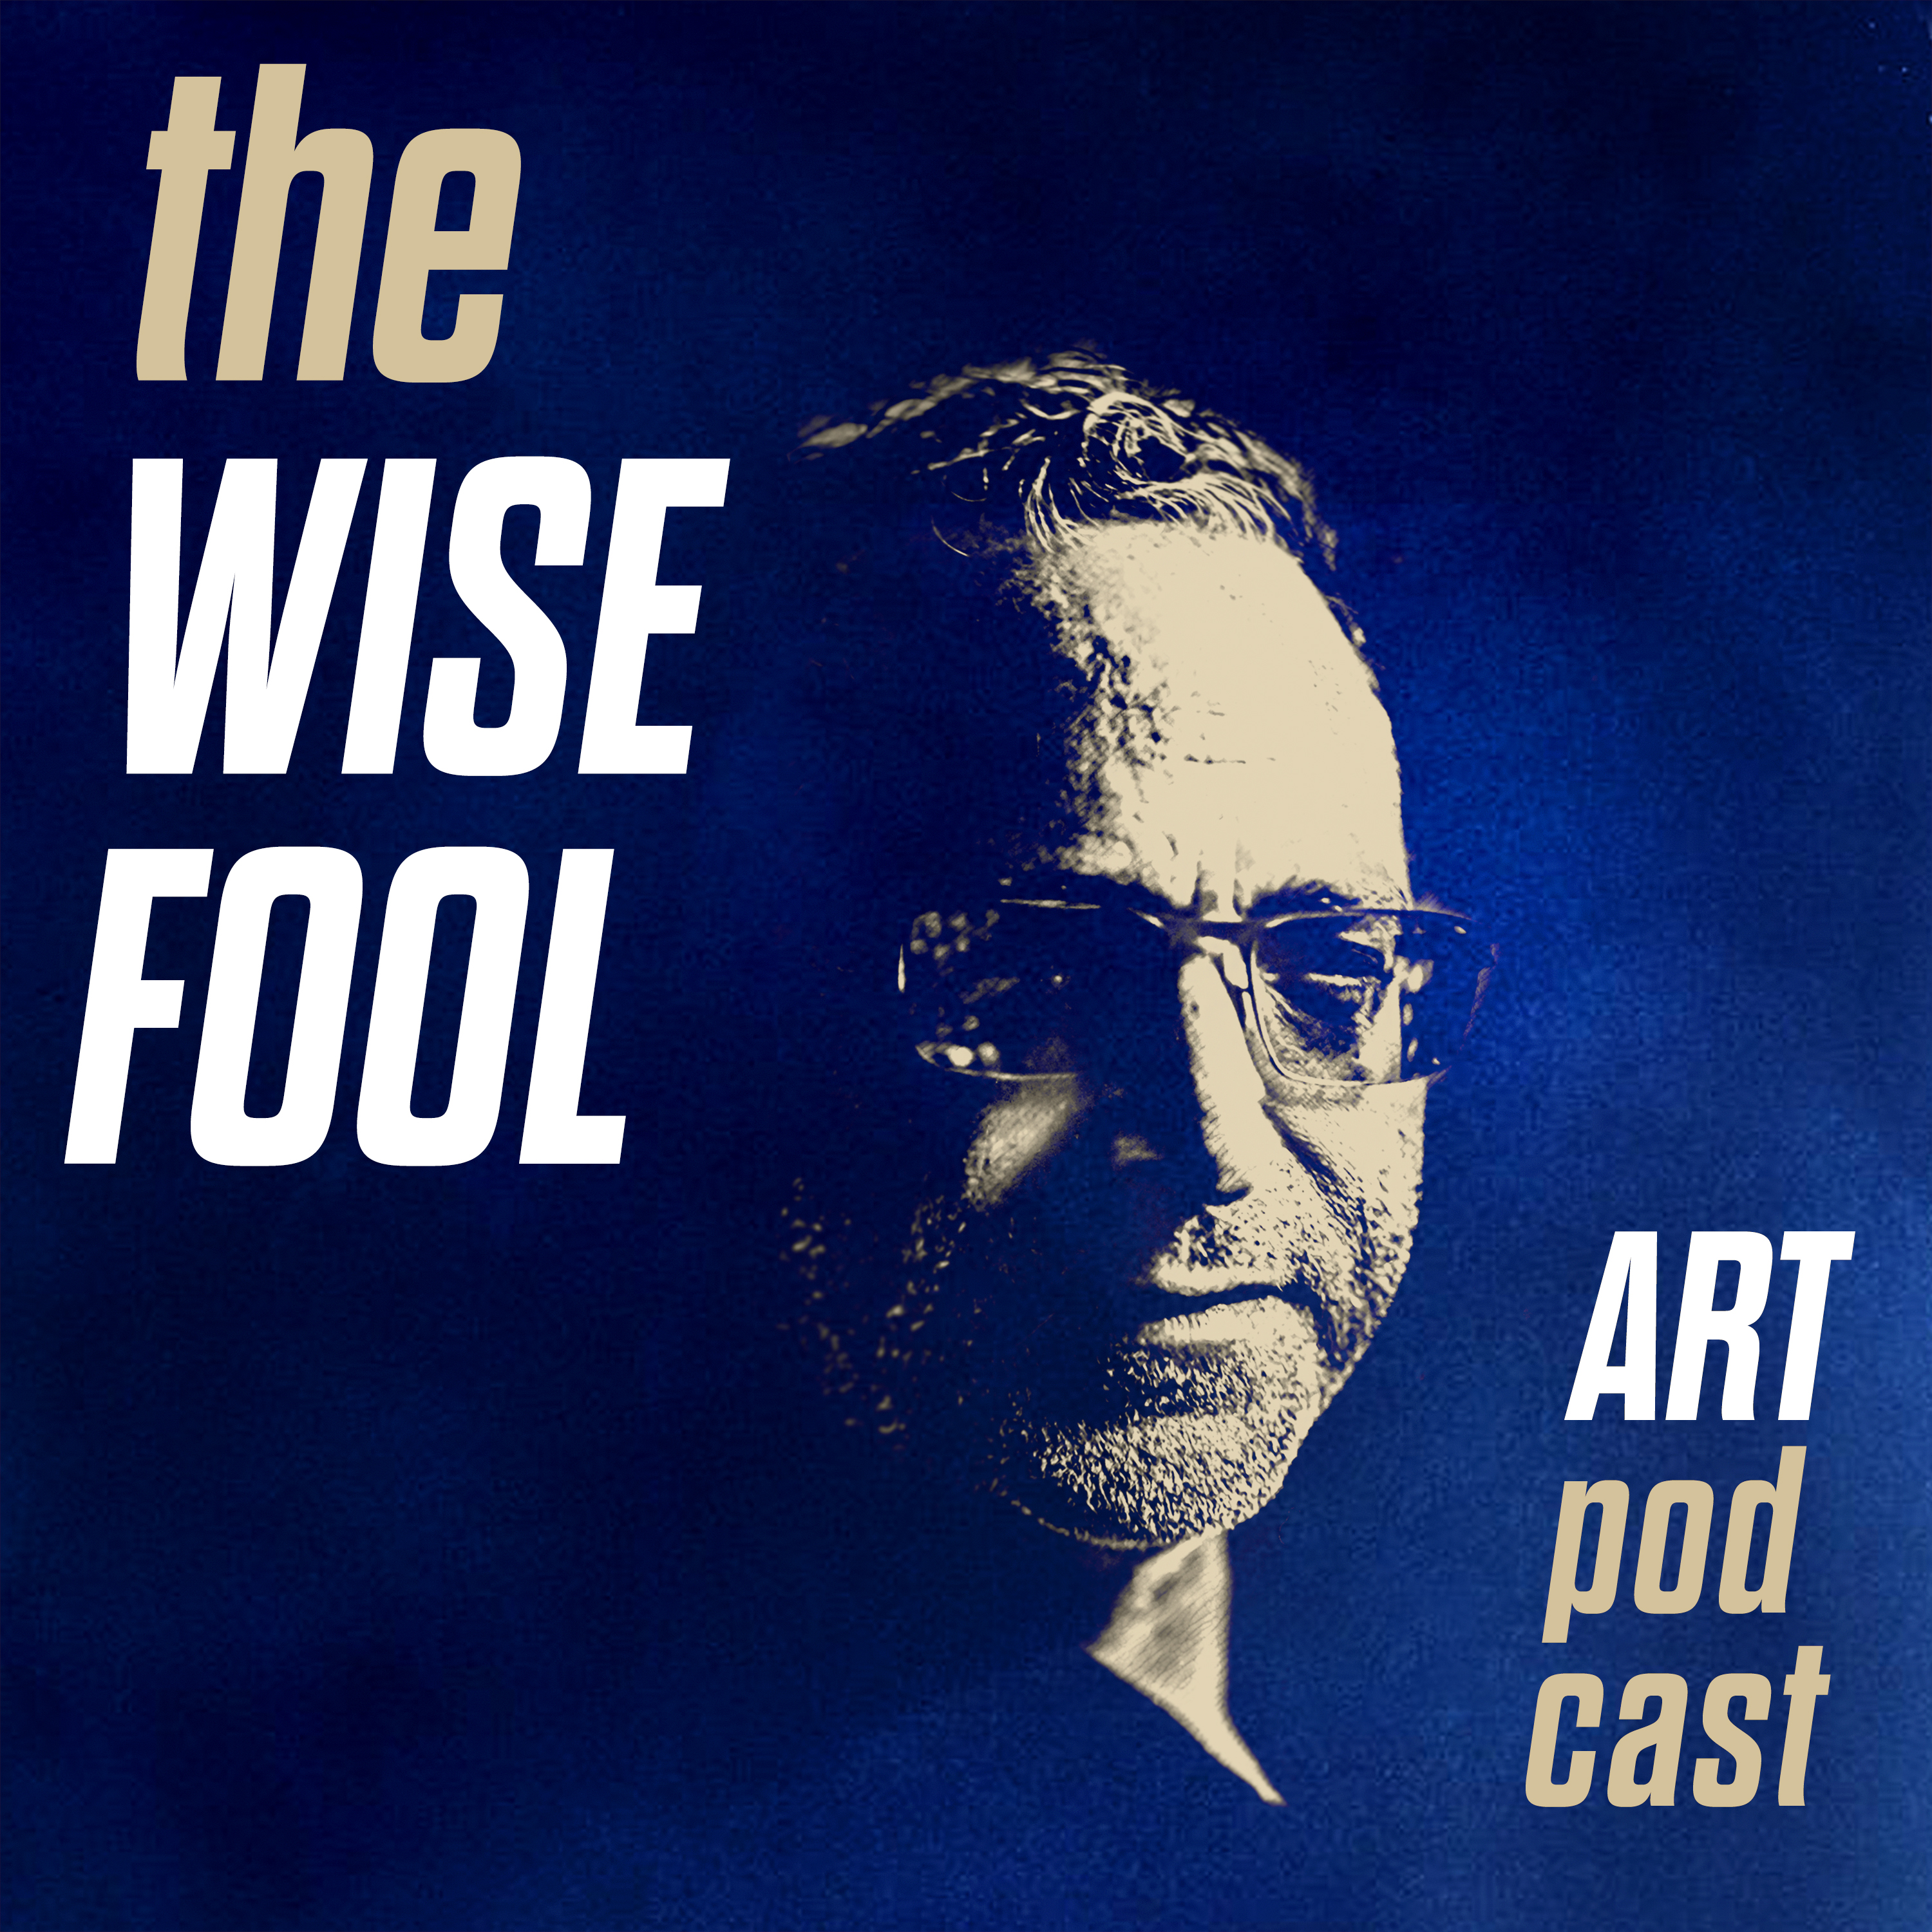 The Wise Fool Art podcast